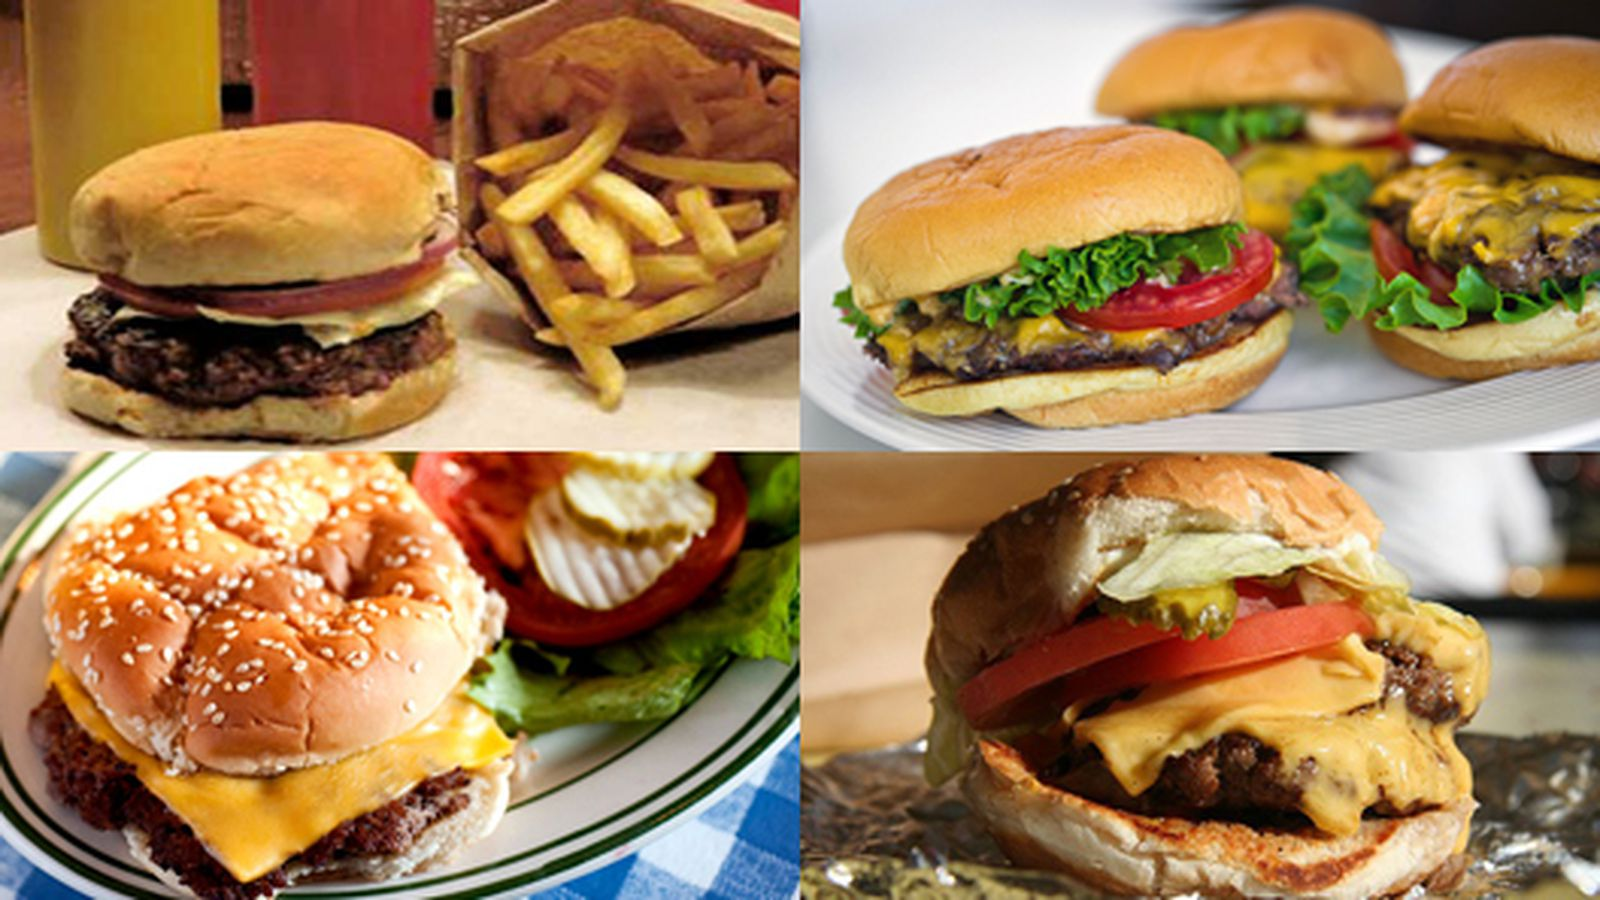 fast food becoming more popular The appeal and potential for vegan products is expanding beyond the small group of people who avoid animal products for ethical reasons to include the much larger base of consumers seeking healthier, cleaner foods, according to an industry expert.